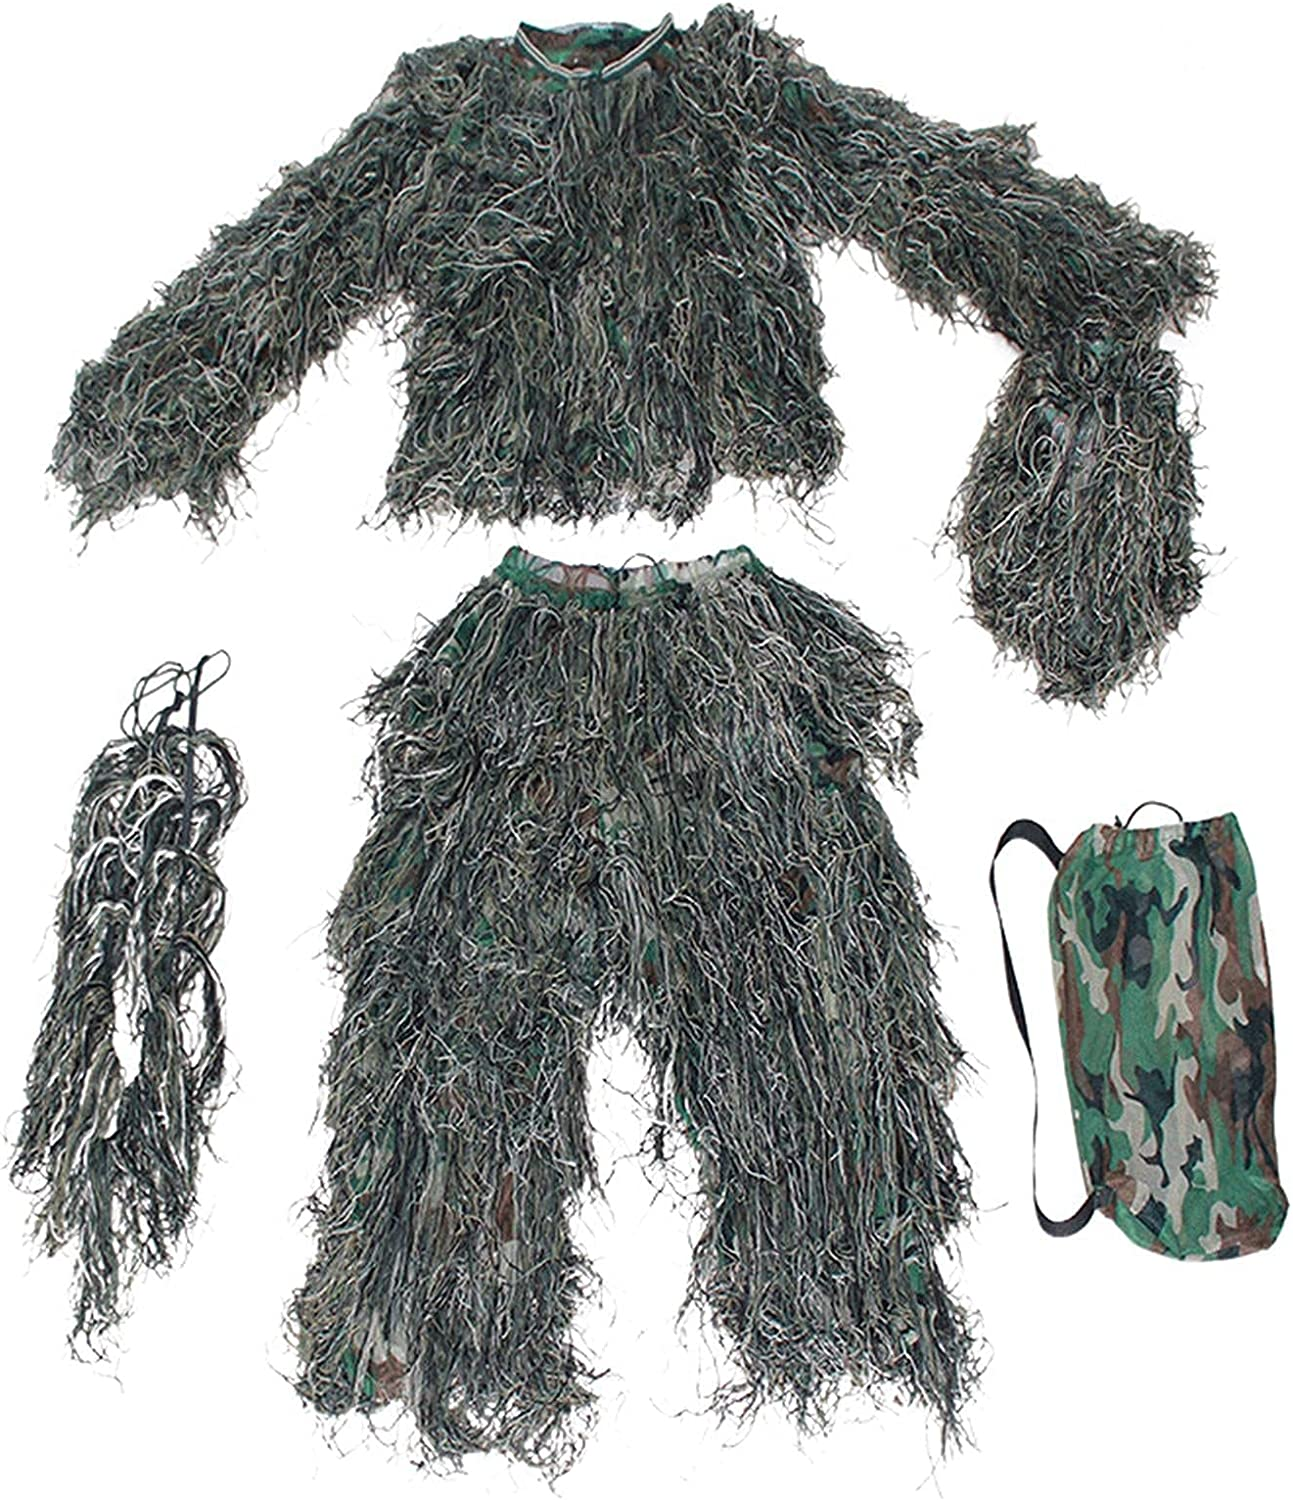 badewanne Hooded Ghillie Suit Camouflage Woodland Camo specialty shop Ranking integrated 1st place Clothing